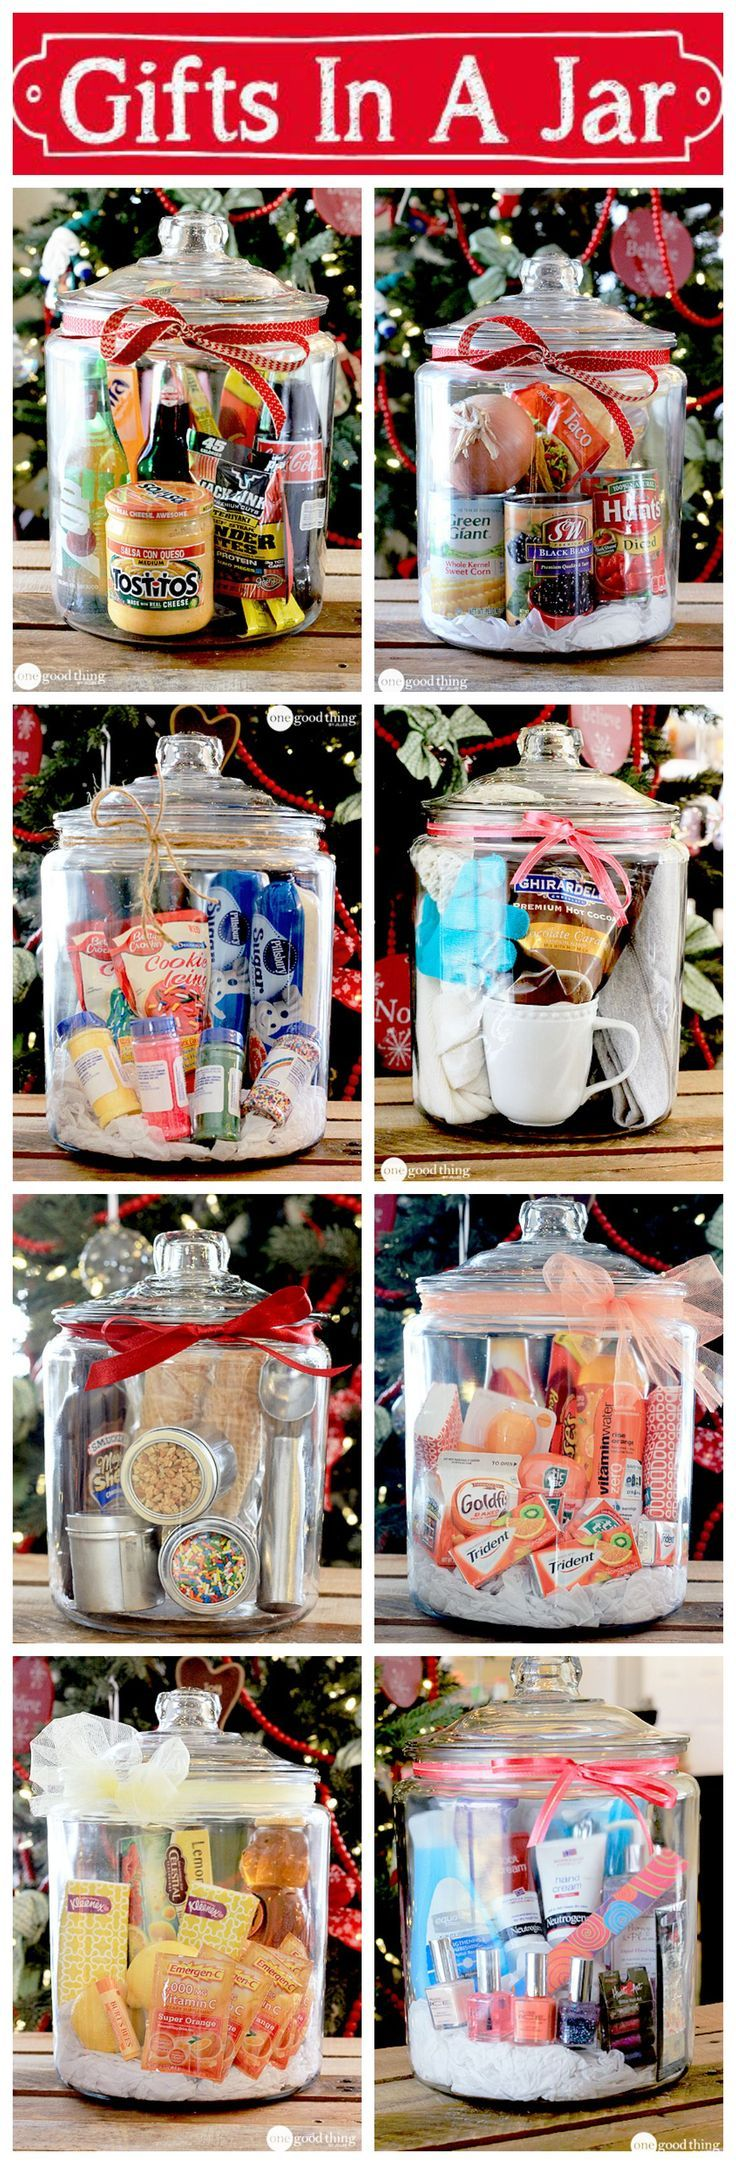 """Gifts In A Jar ~ Think outside the gift basket """"box!"""" A simple, creative, and inexpensive gift idea sure to please many different people on your list!"""